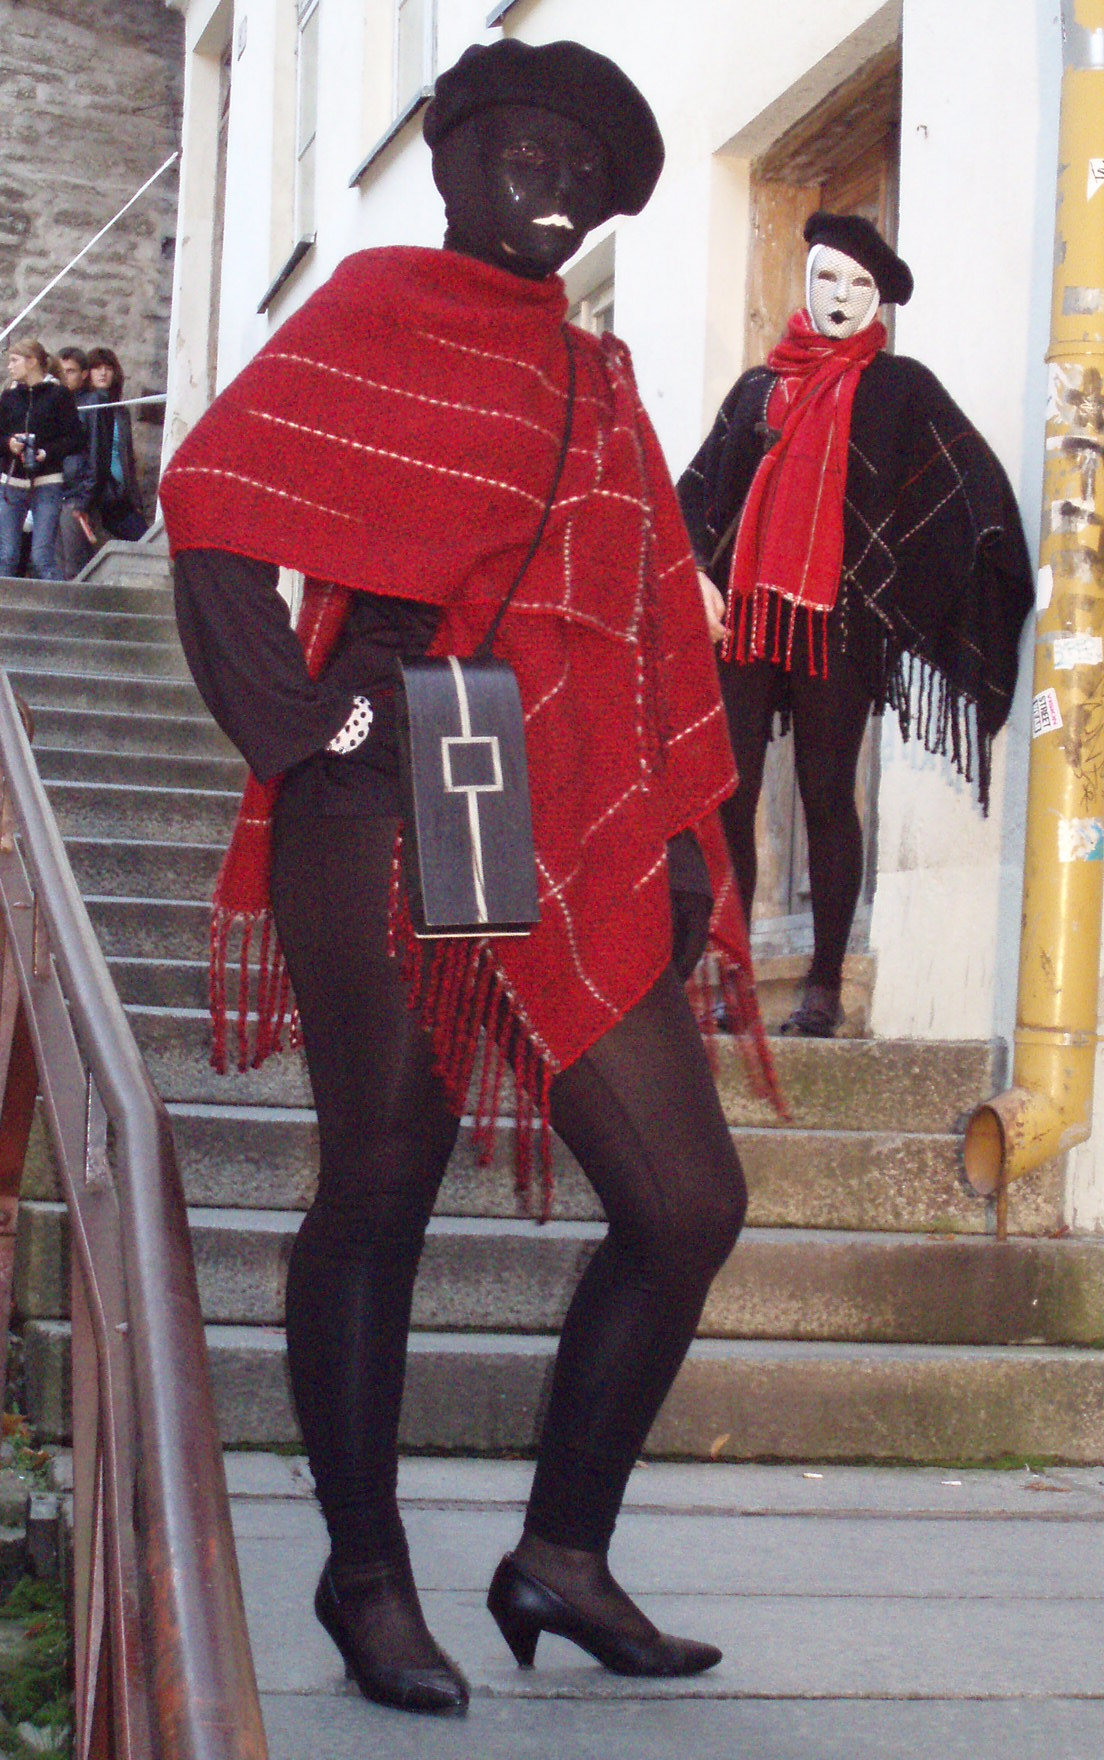 model wearing a black wooden intarsia bag with an outline of a square and a vertical stripe